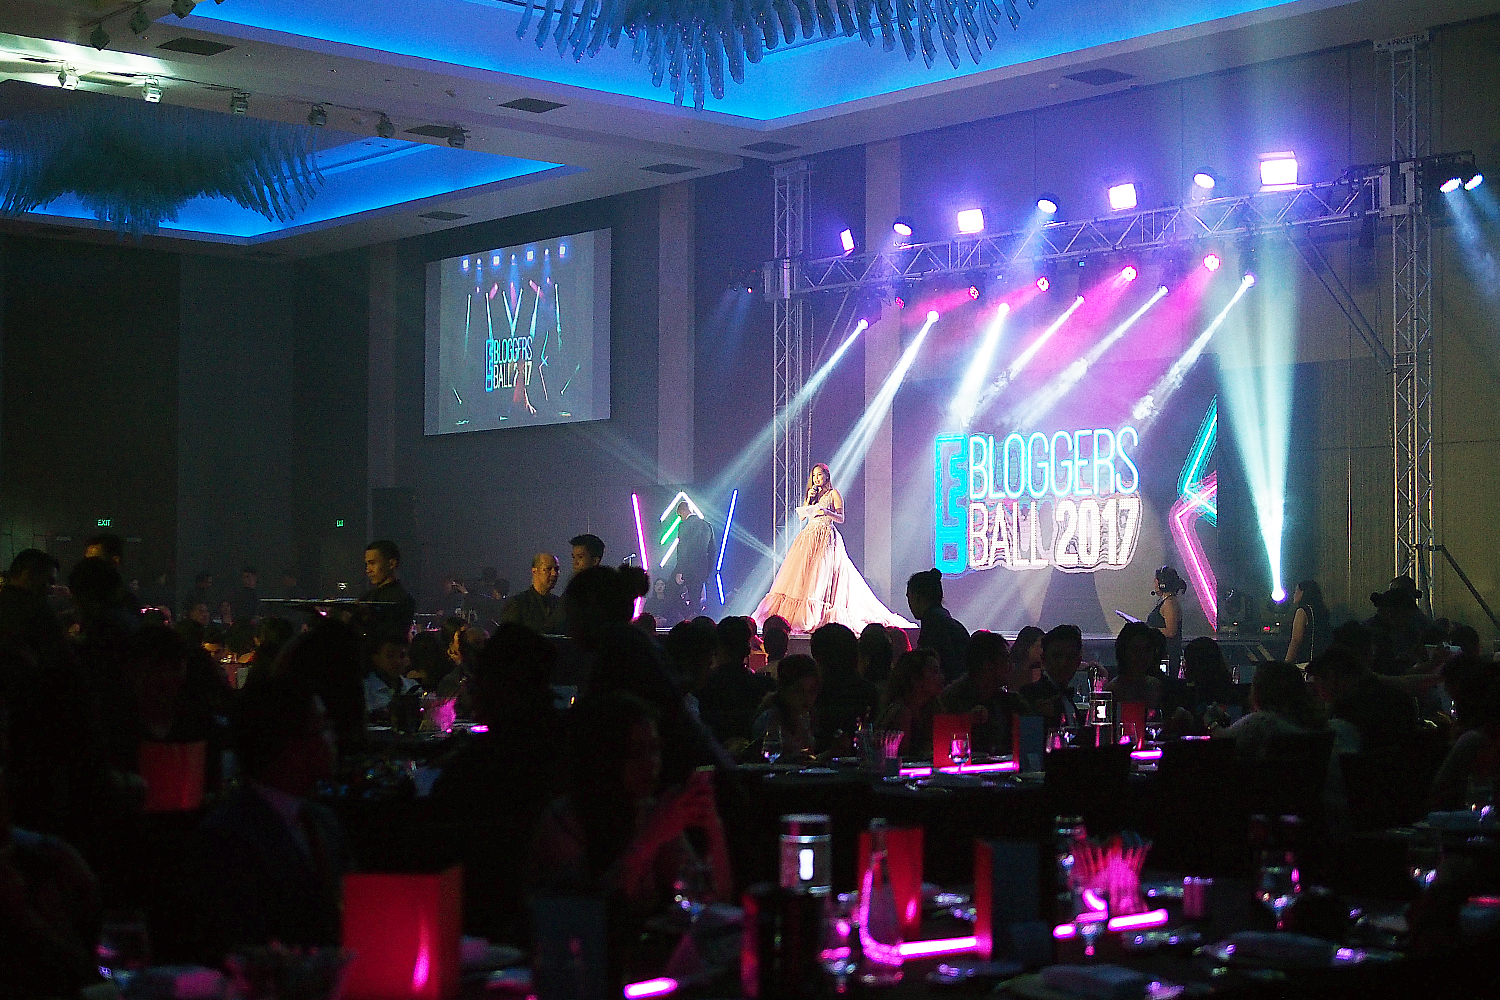 We got to Party at the E Bloggers Ball 2017!